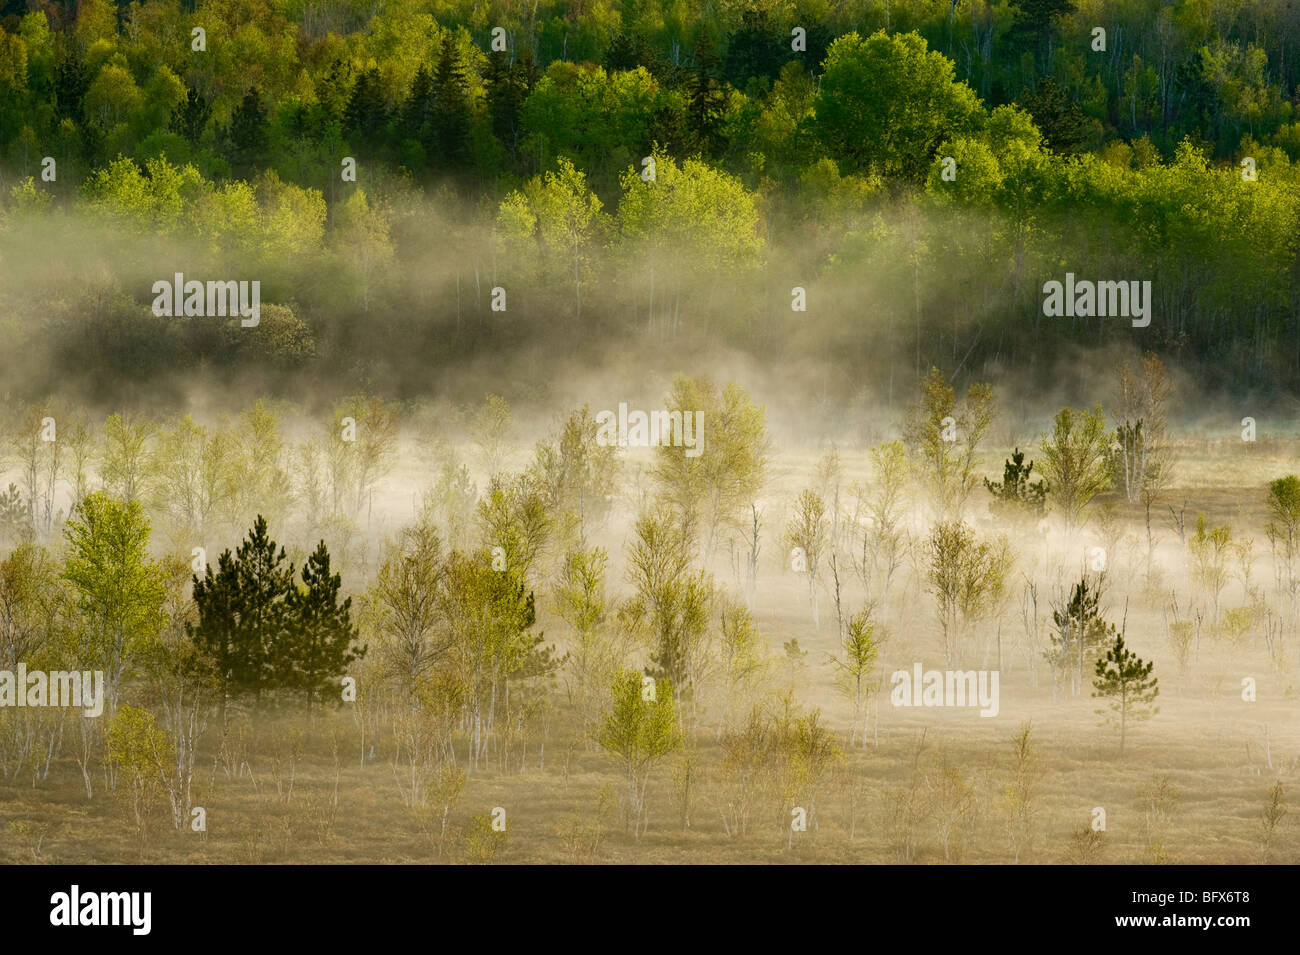 Spring forests on hillsides with morning mists in valley bog, Greater Sudbury, Ontario, Canada - Stock Image